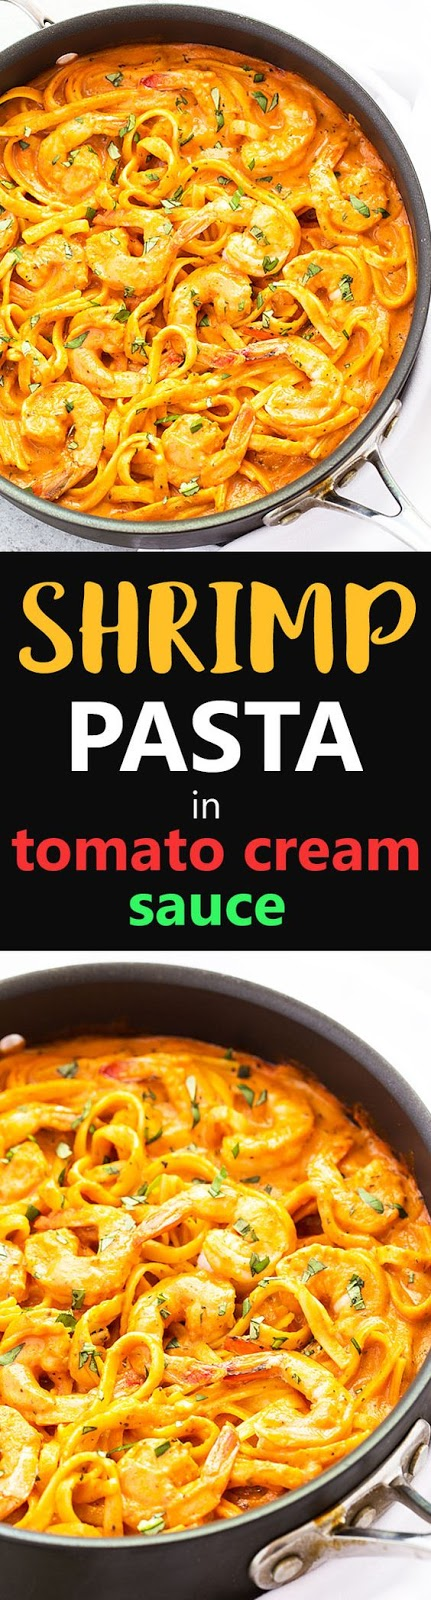 ONE PAN SHRIMP AND PASTA IN TOMATO CREAM SAUCE